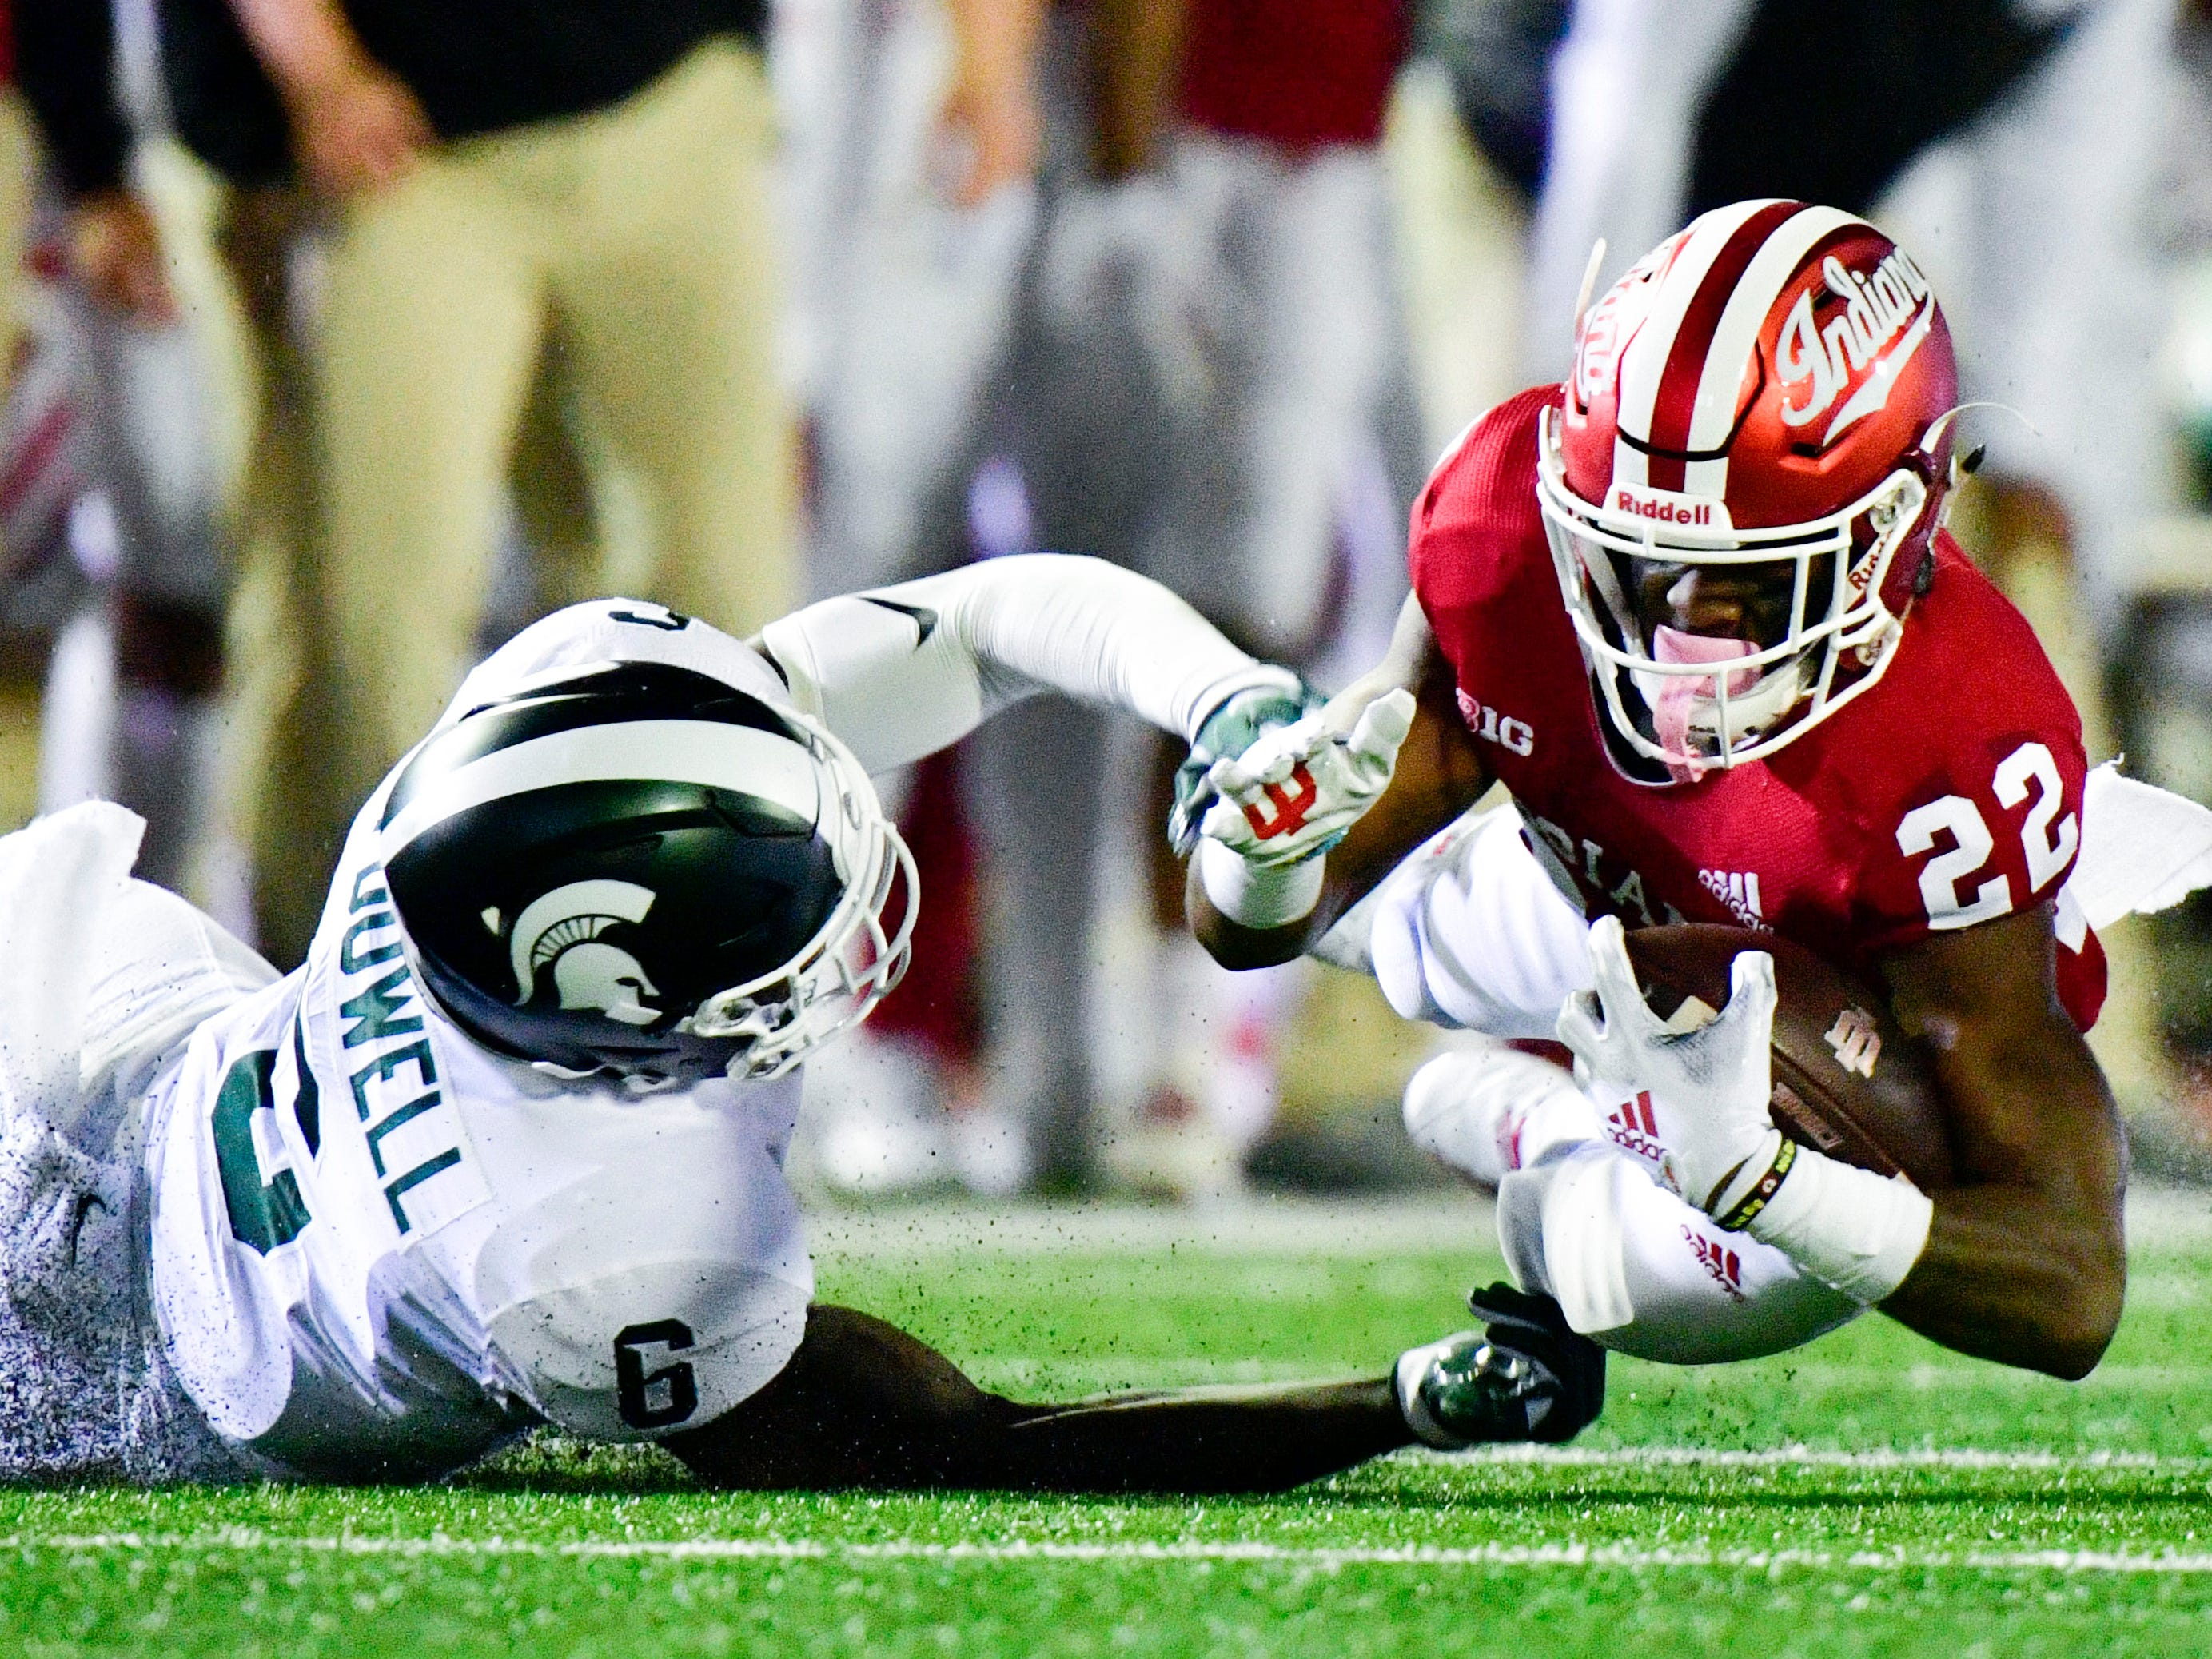 Indiana Hoosiers wide receiver Whop Philyor (22) dives to the ground while defended by Michigan State Spartans safety David Dowell (6) during the first half of the game at Memorial Stadium.